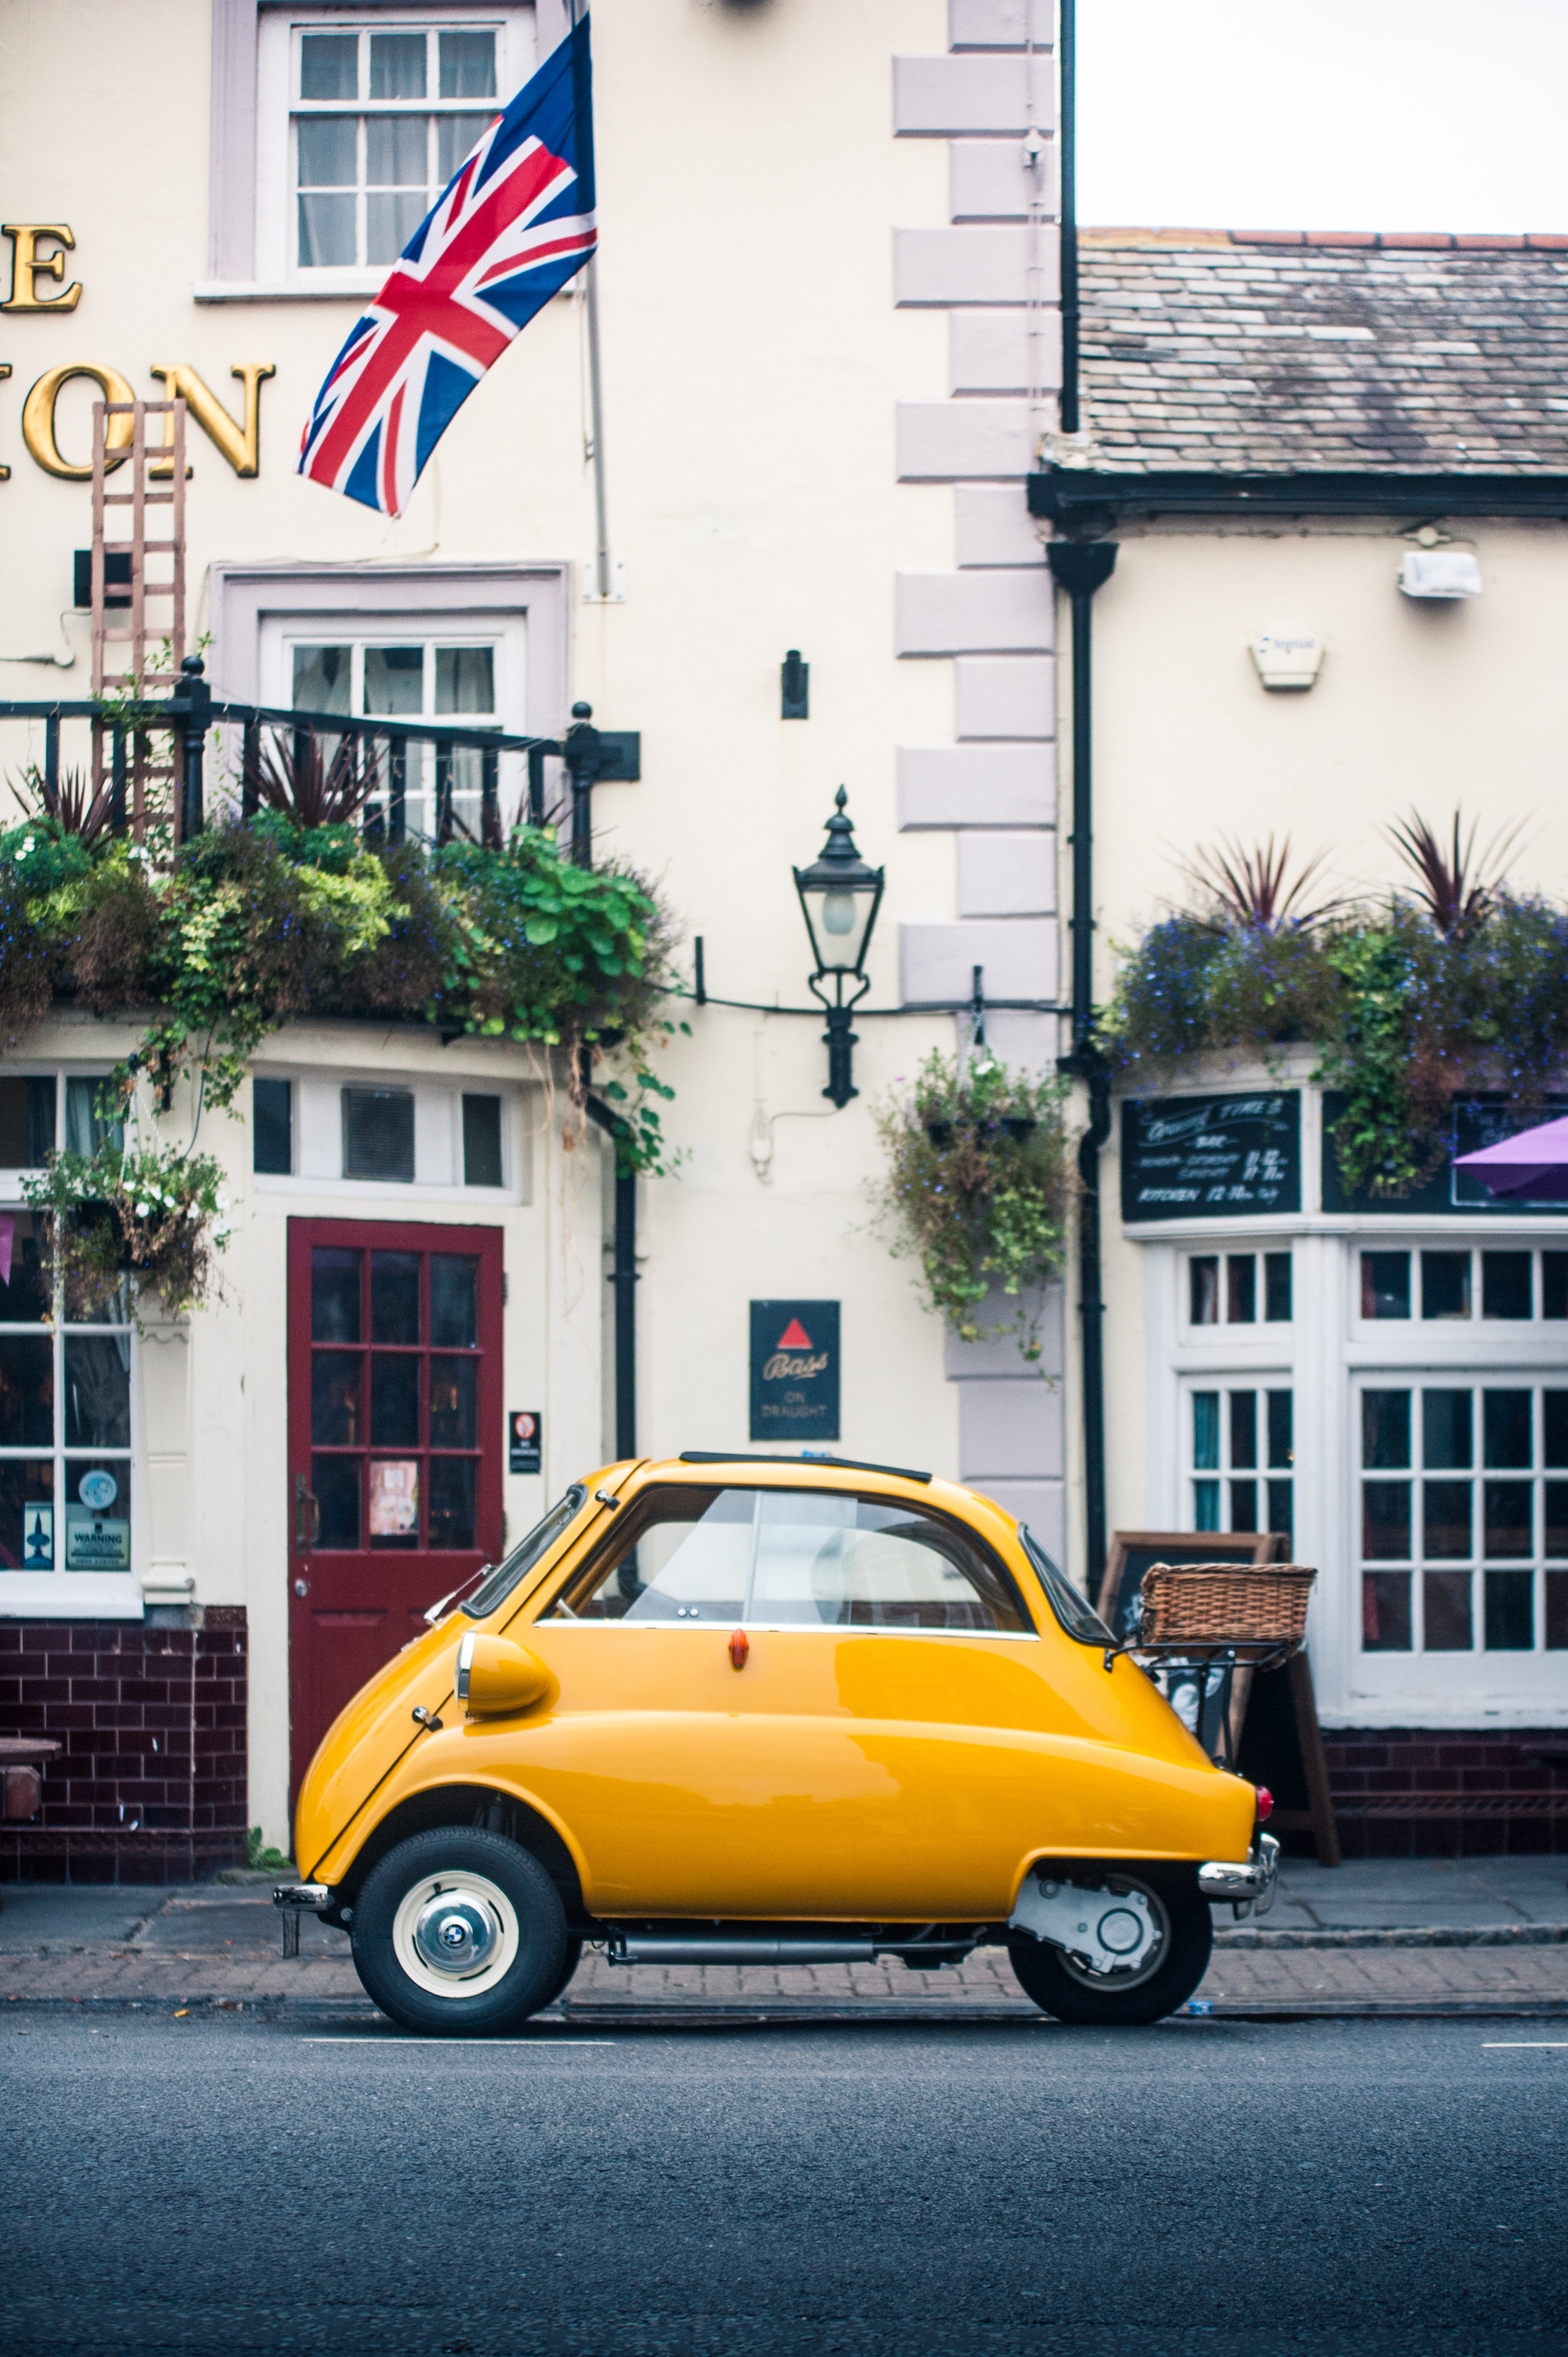 The small but beautiful BMW Isetta 300